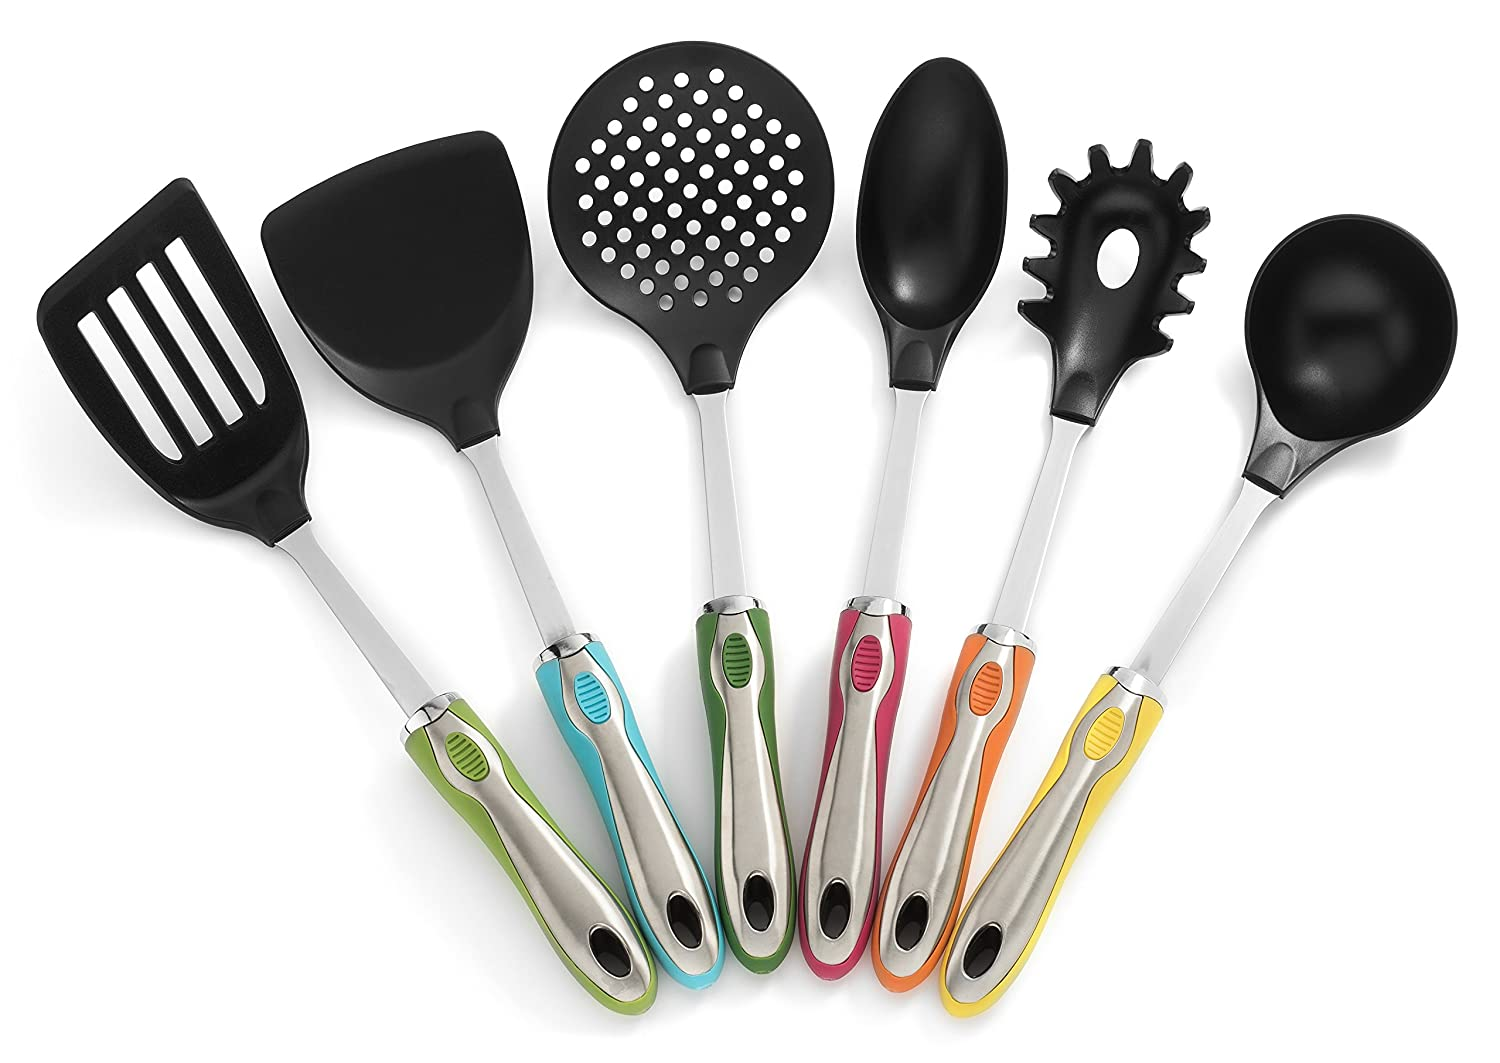 Amazon.com: Kitchen Utensils with Holder 7 Pc Cute Utensil Set ...